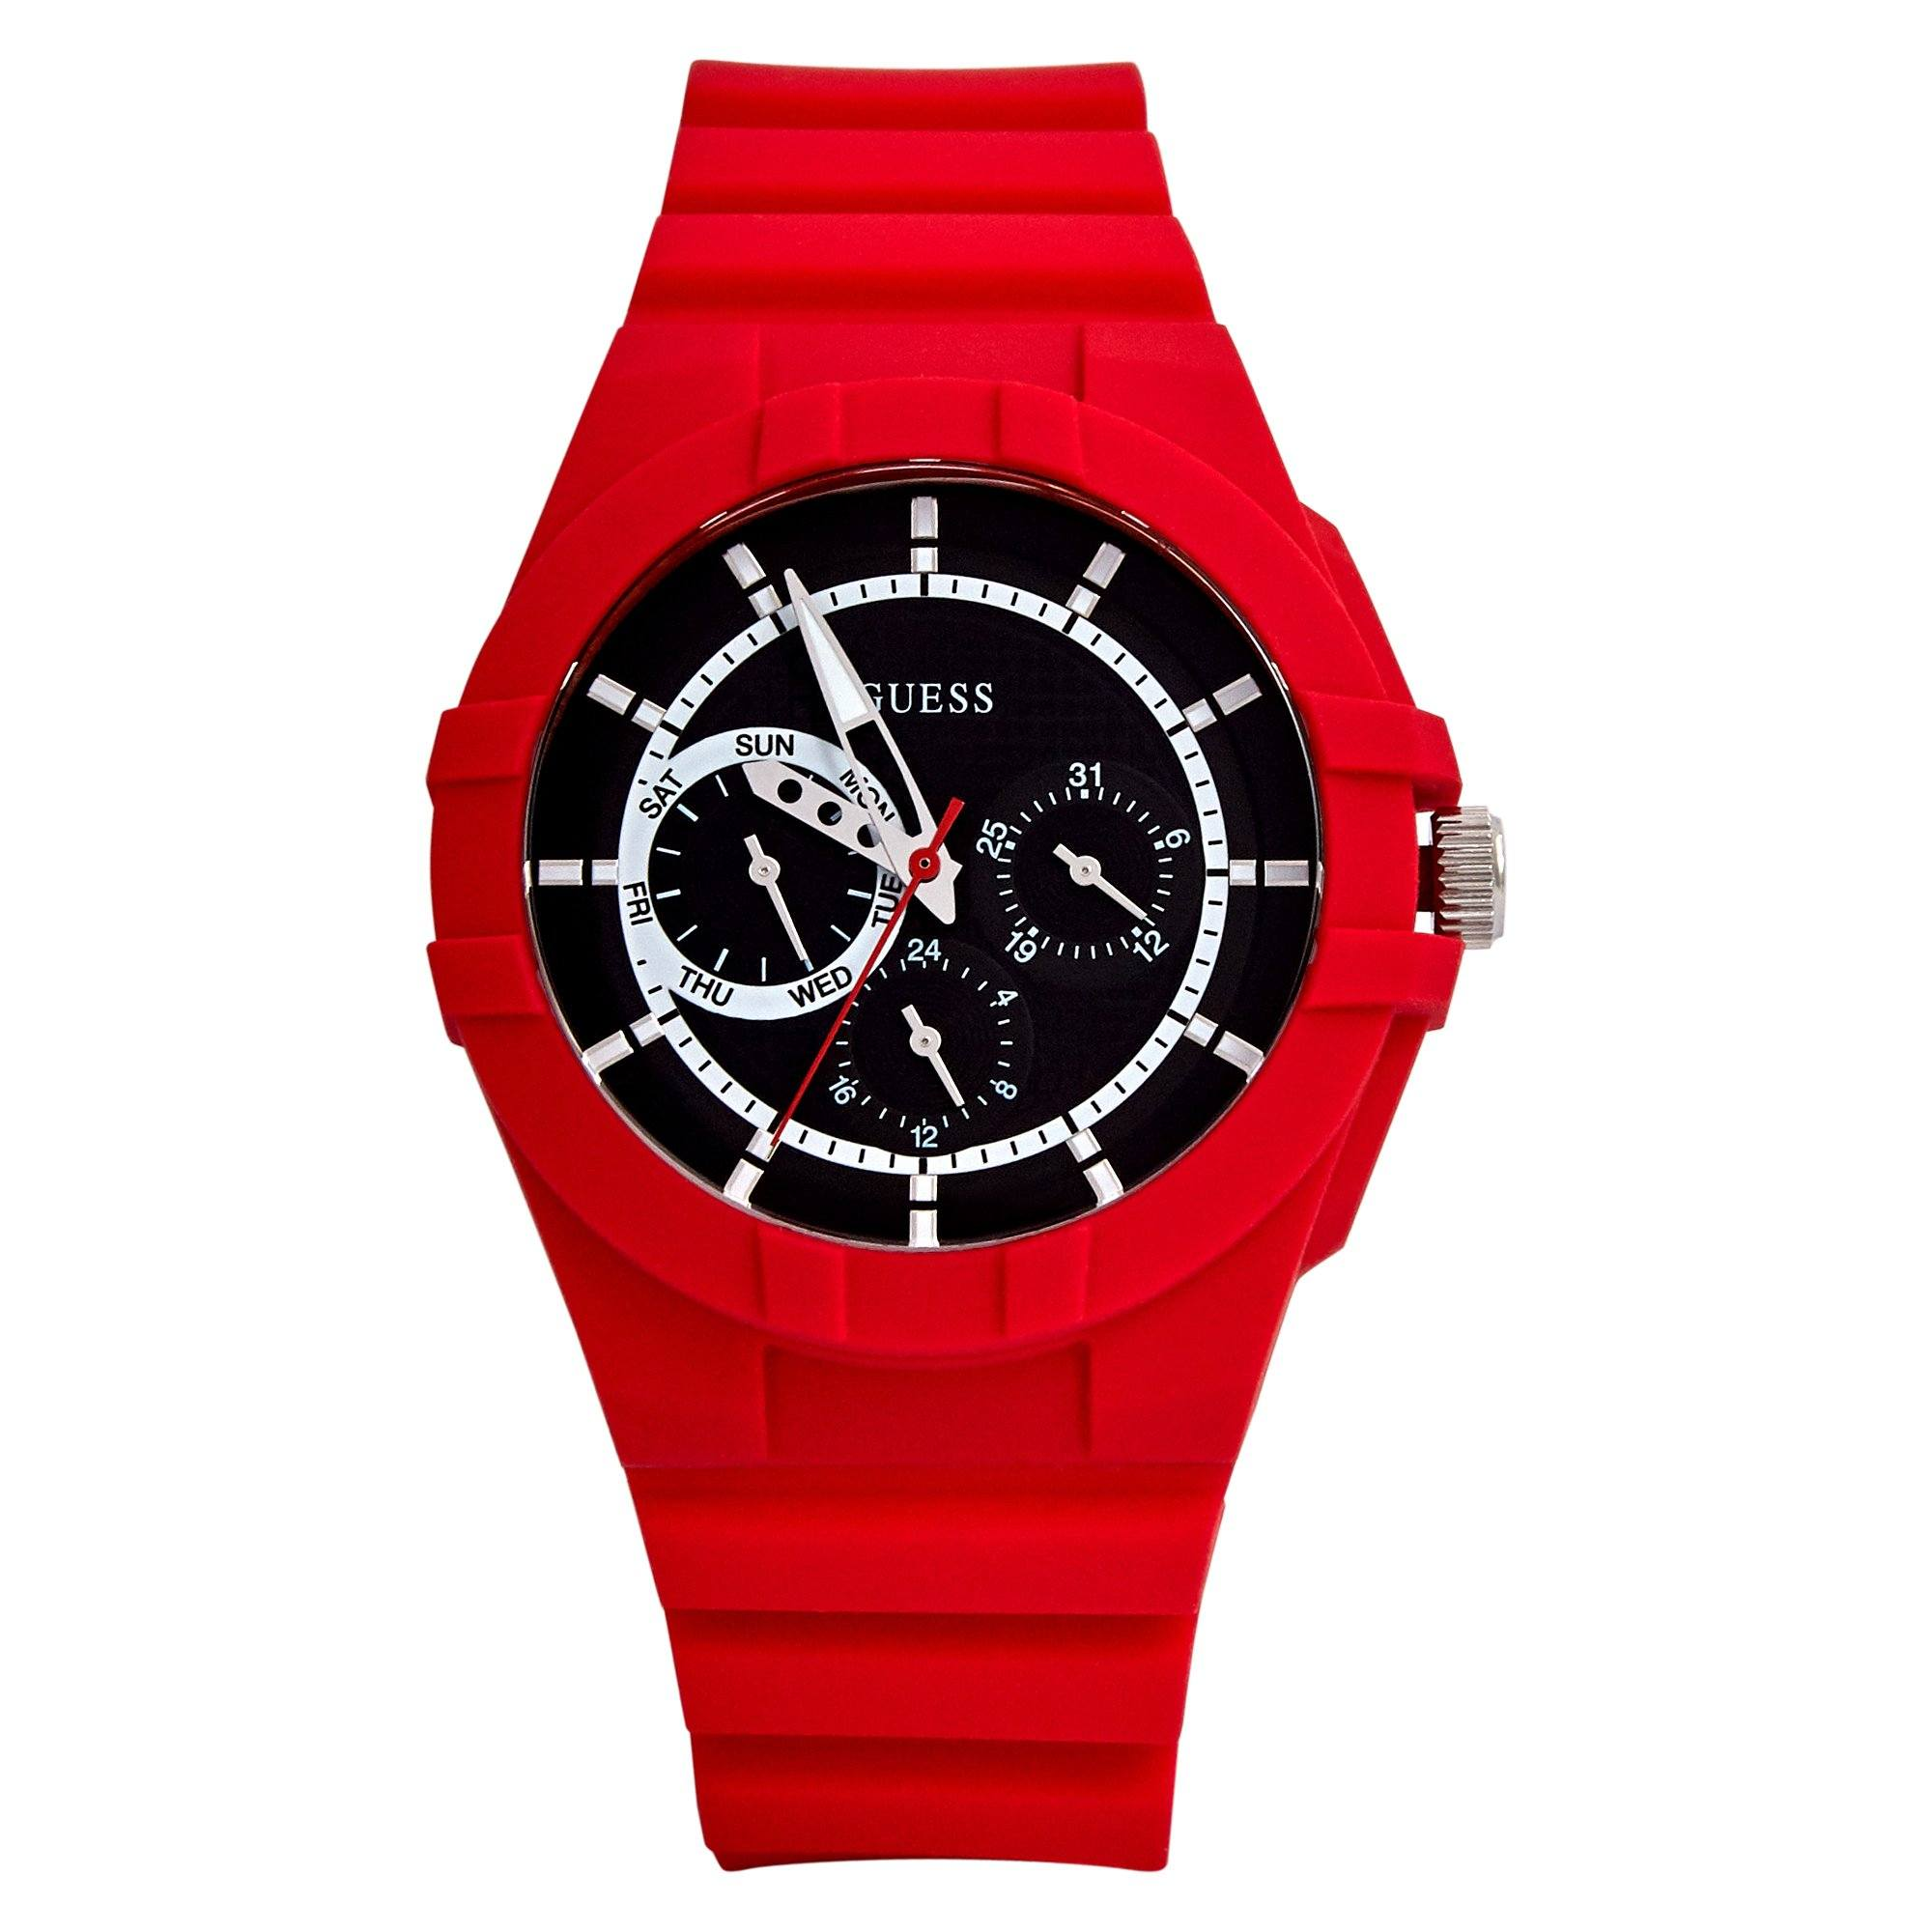 Guess Spinner Red Red Silc Watches Isbister & Co Wholesale